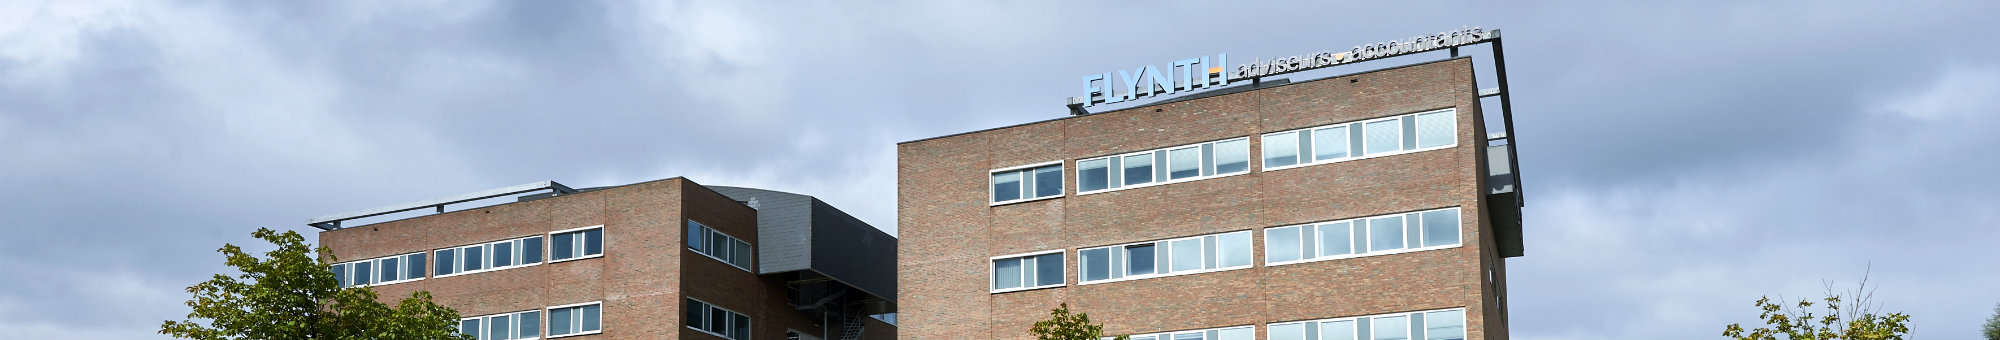 Flynth adviseurs en accountants in Ridderkerk